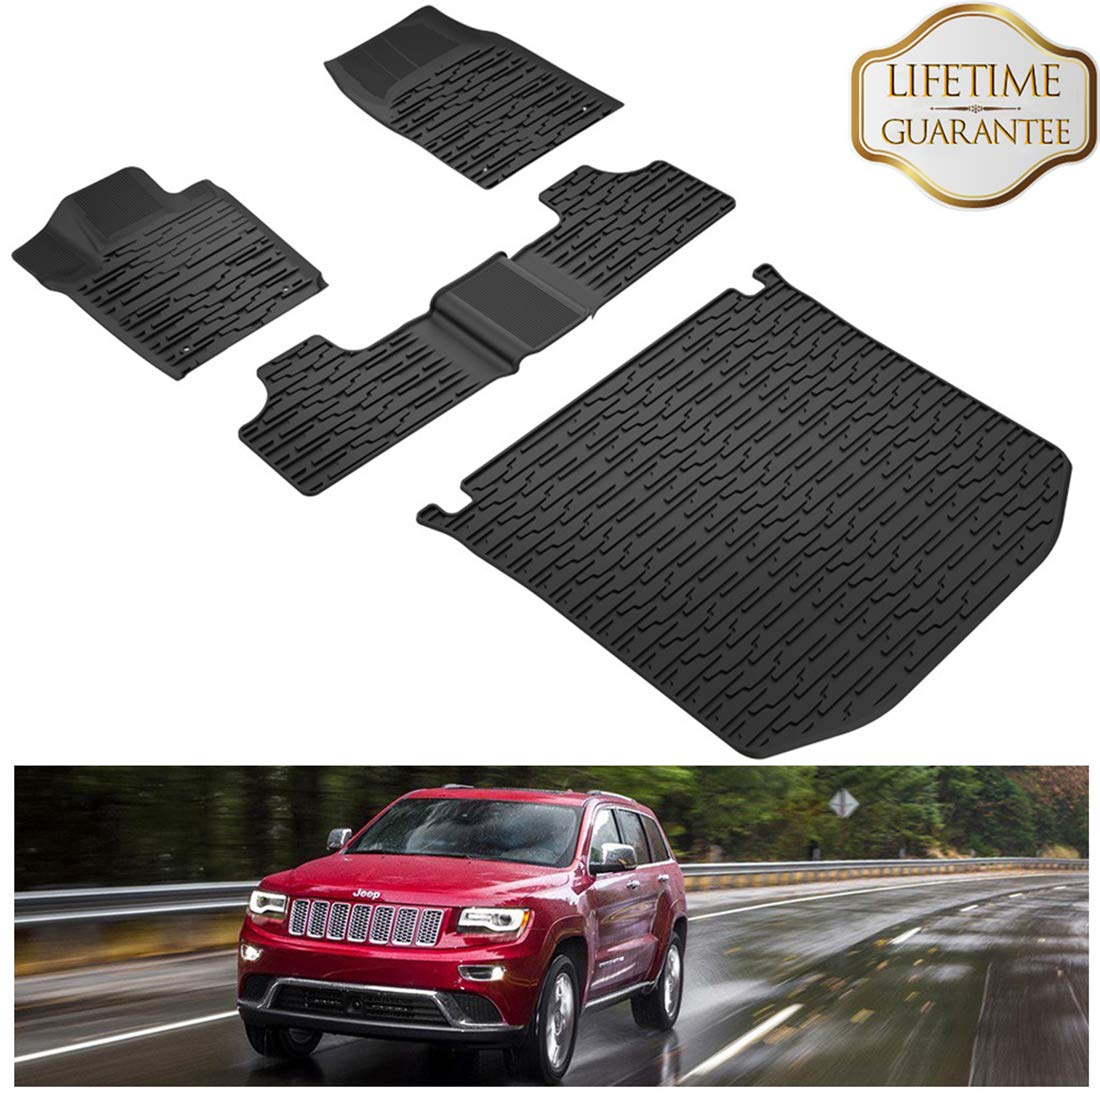 KIWI MASTER Floor Mats & Cargo Liners Set Compatible for 2013-2015 Jeep Grand Cherokee Front & Rear Black Floor Cargo Mat All Weather Protection Slush Mats by KIWI MASTER (Image #1)